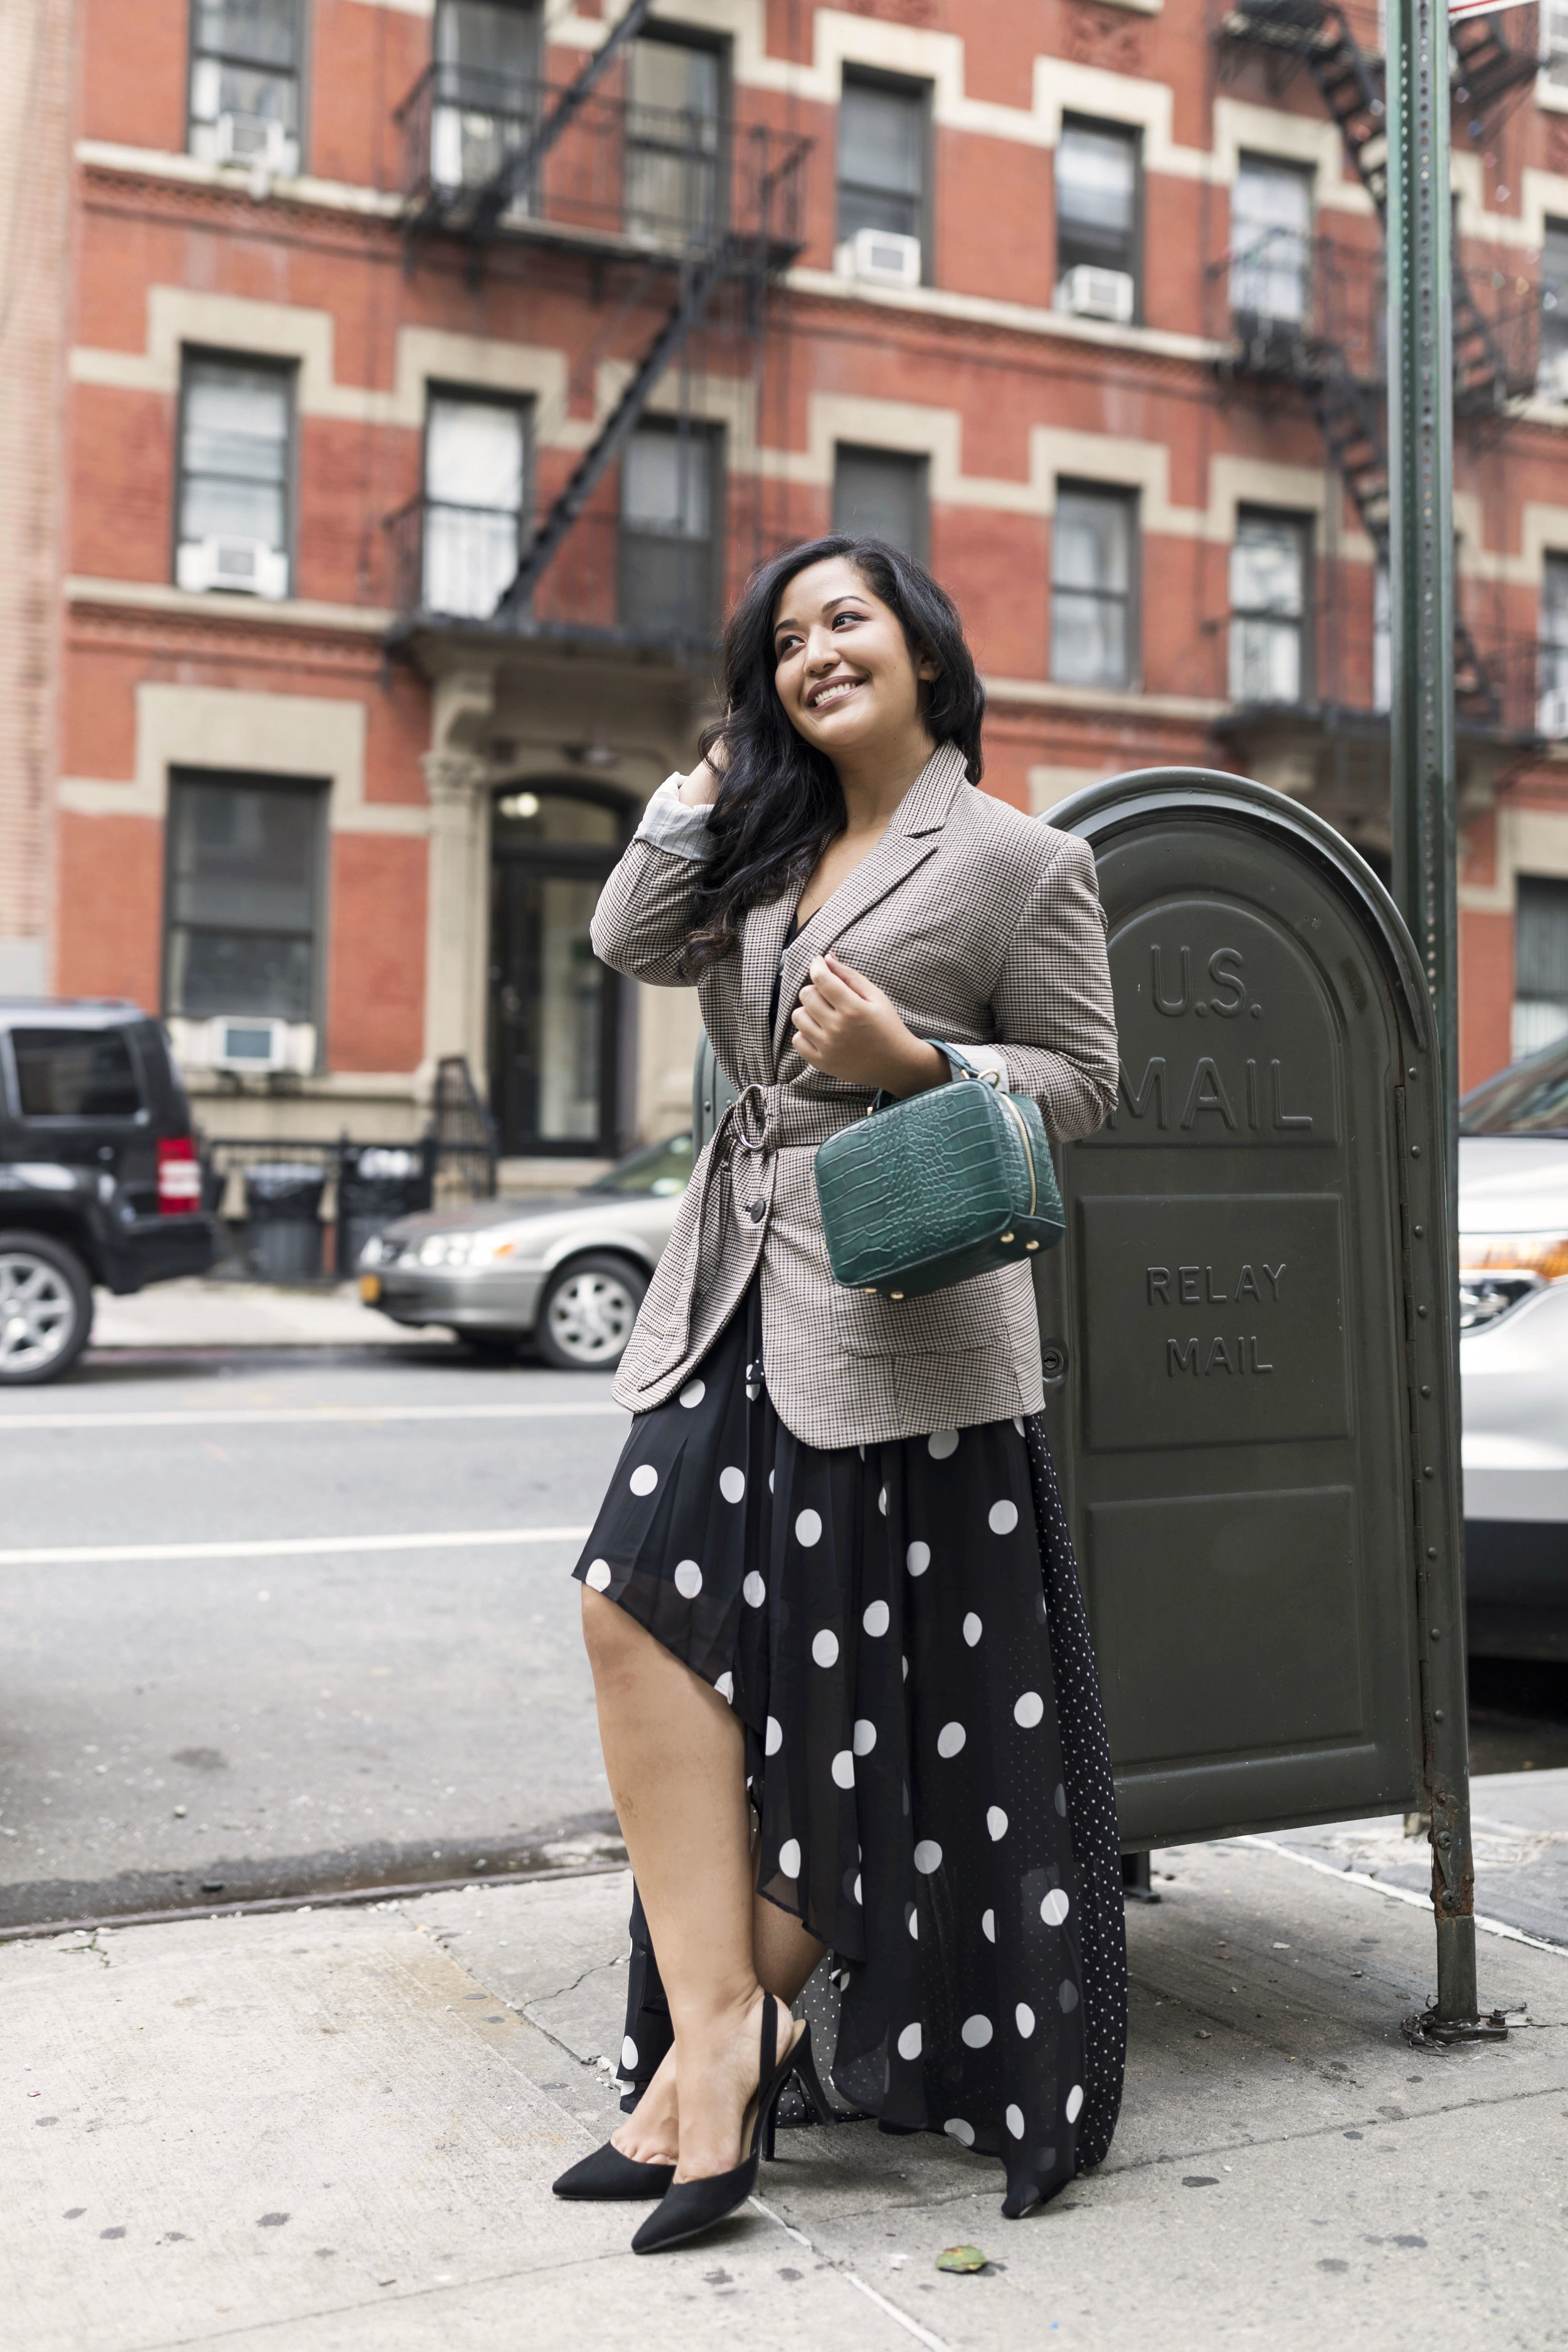 Krity S x Fall Trends x Plaid and Polka Dots4.jpg